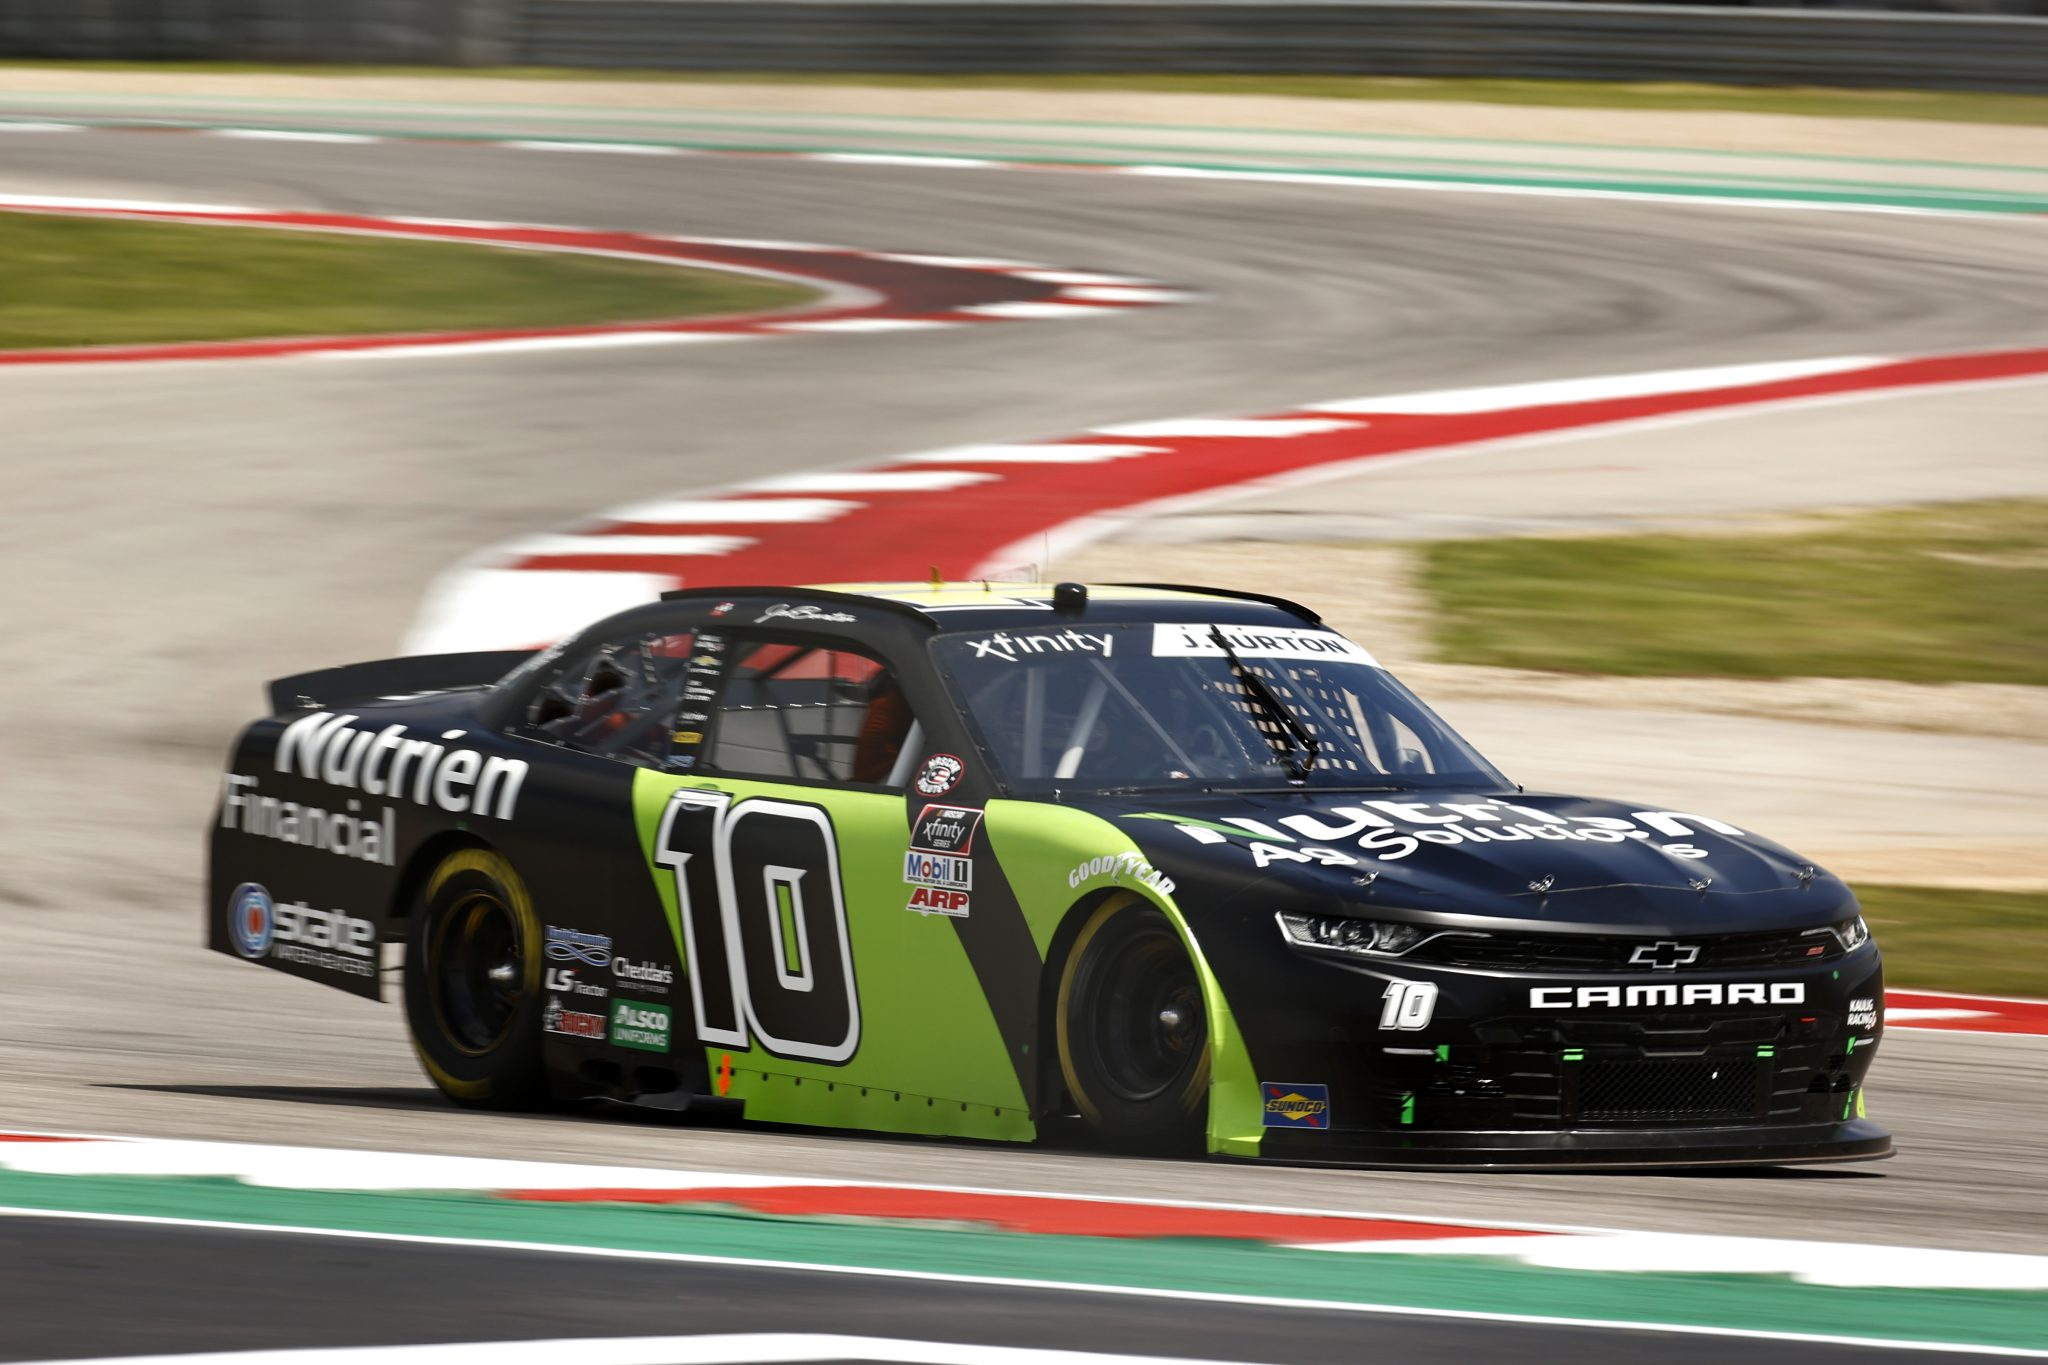 AUSTIN, TEXAS - MAY 21: Jeb Burton, driver of the #10 Nutrien Ag Solutions Chevrolet, drives during practice for the NASCAR Xfinity Series Pit Boss 250 at Circuit of The Americas on May 21, 2021 in Austin, Texas. (Photo by Jared C. Tilton/Getty Images) | Getty Images